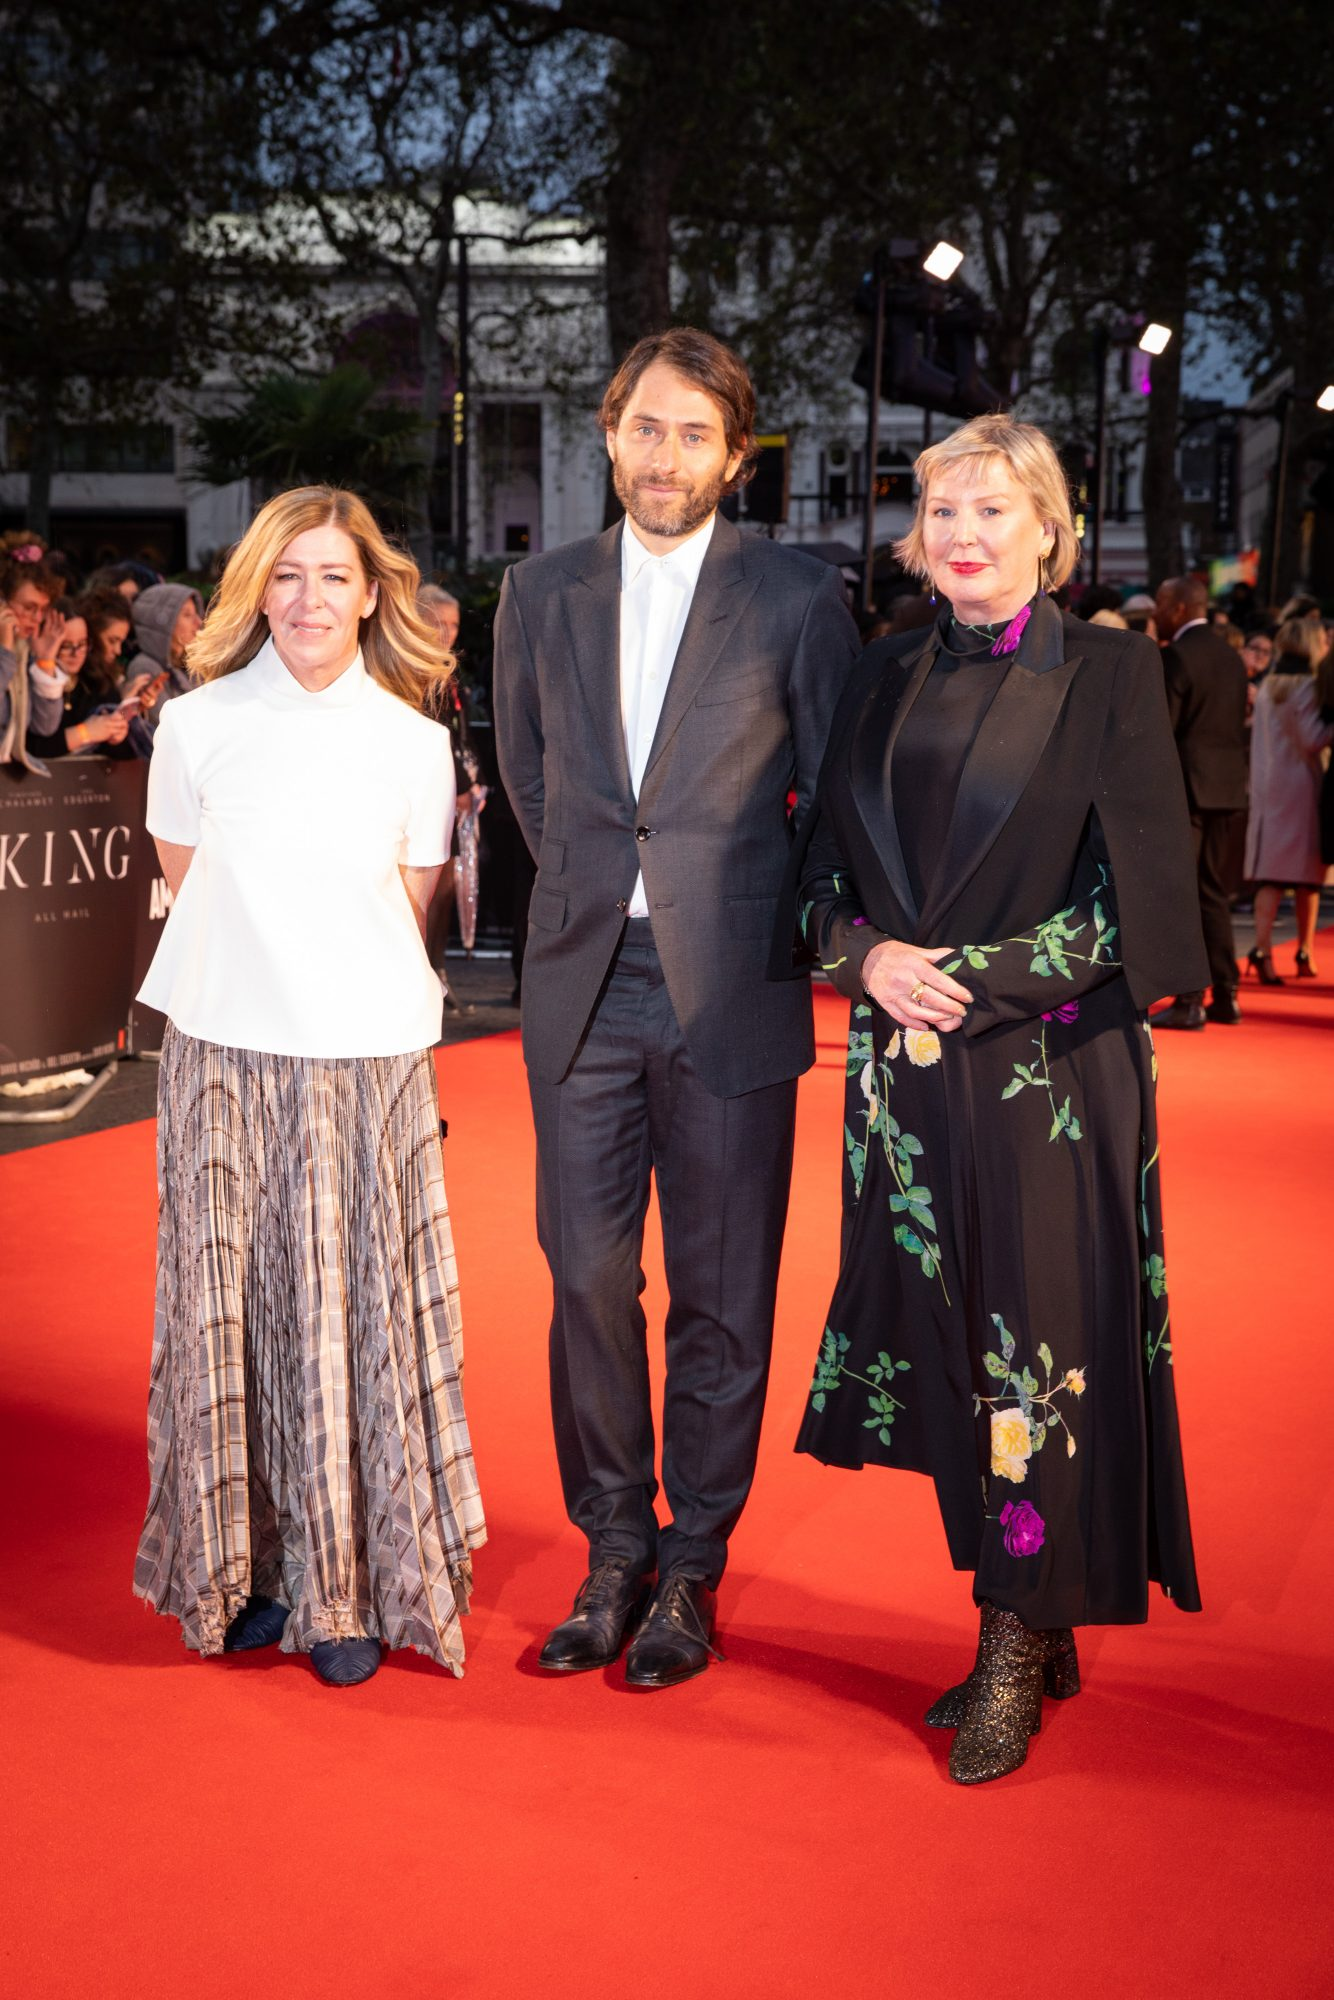 Dede Gardner, Jeremy Kleiner and Liz Watts at The King UK Premiere during the 63rd BFI London Film Festival at Odeon Luxe Leicester Square on 3rd October 2019.  Photos: Netflix